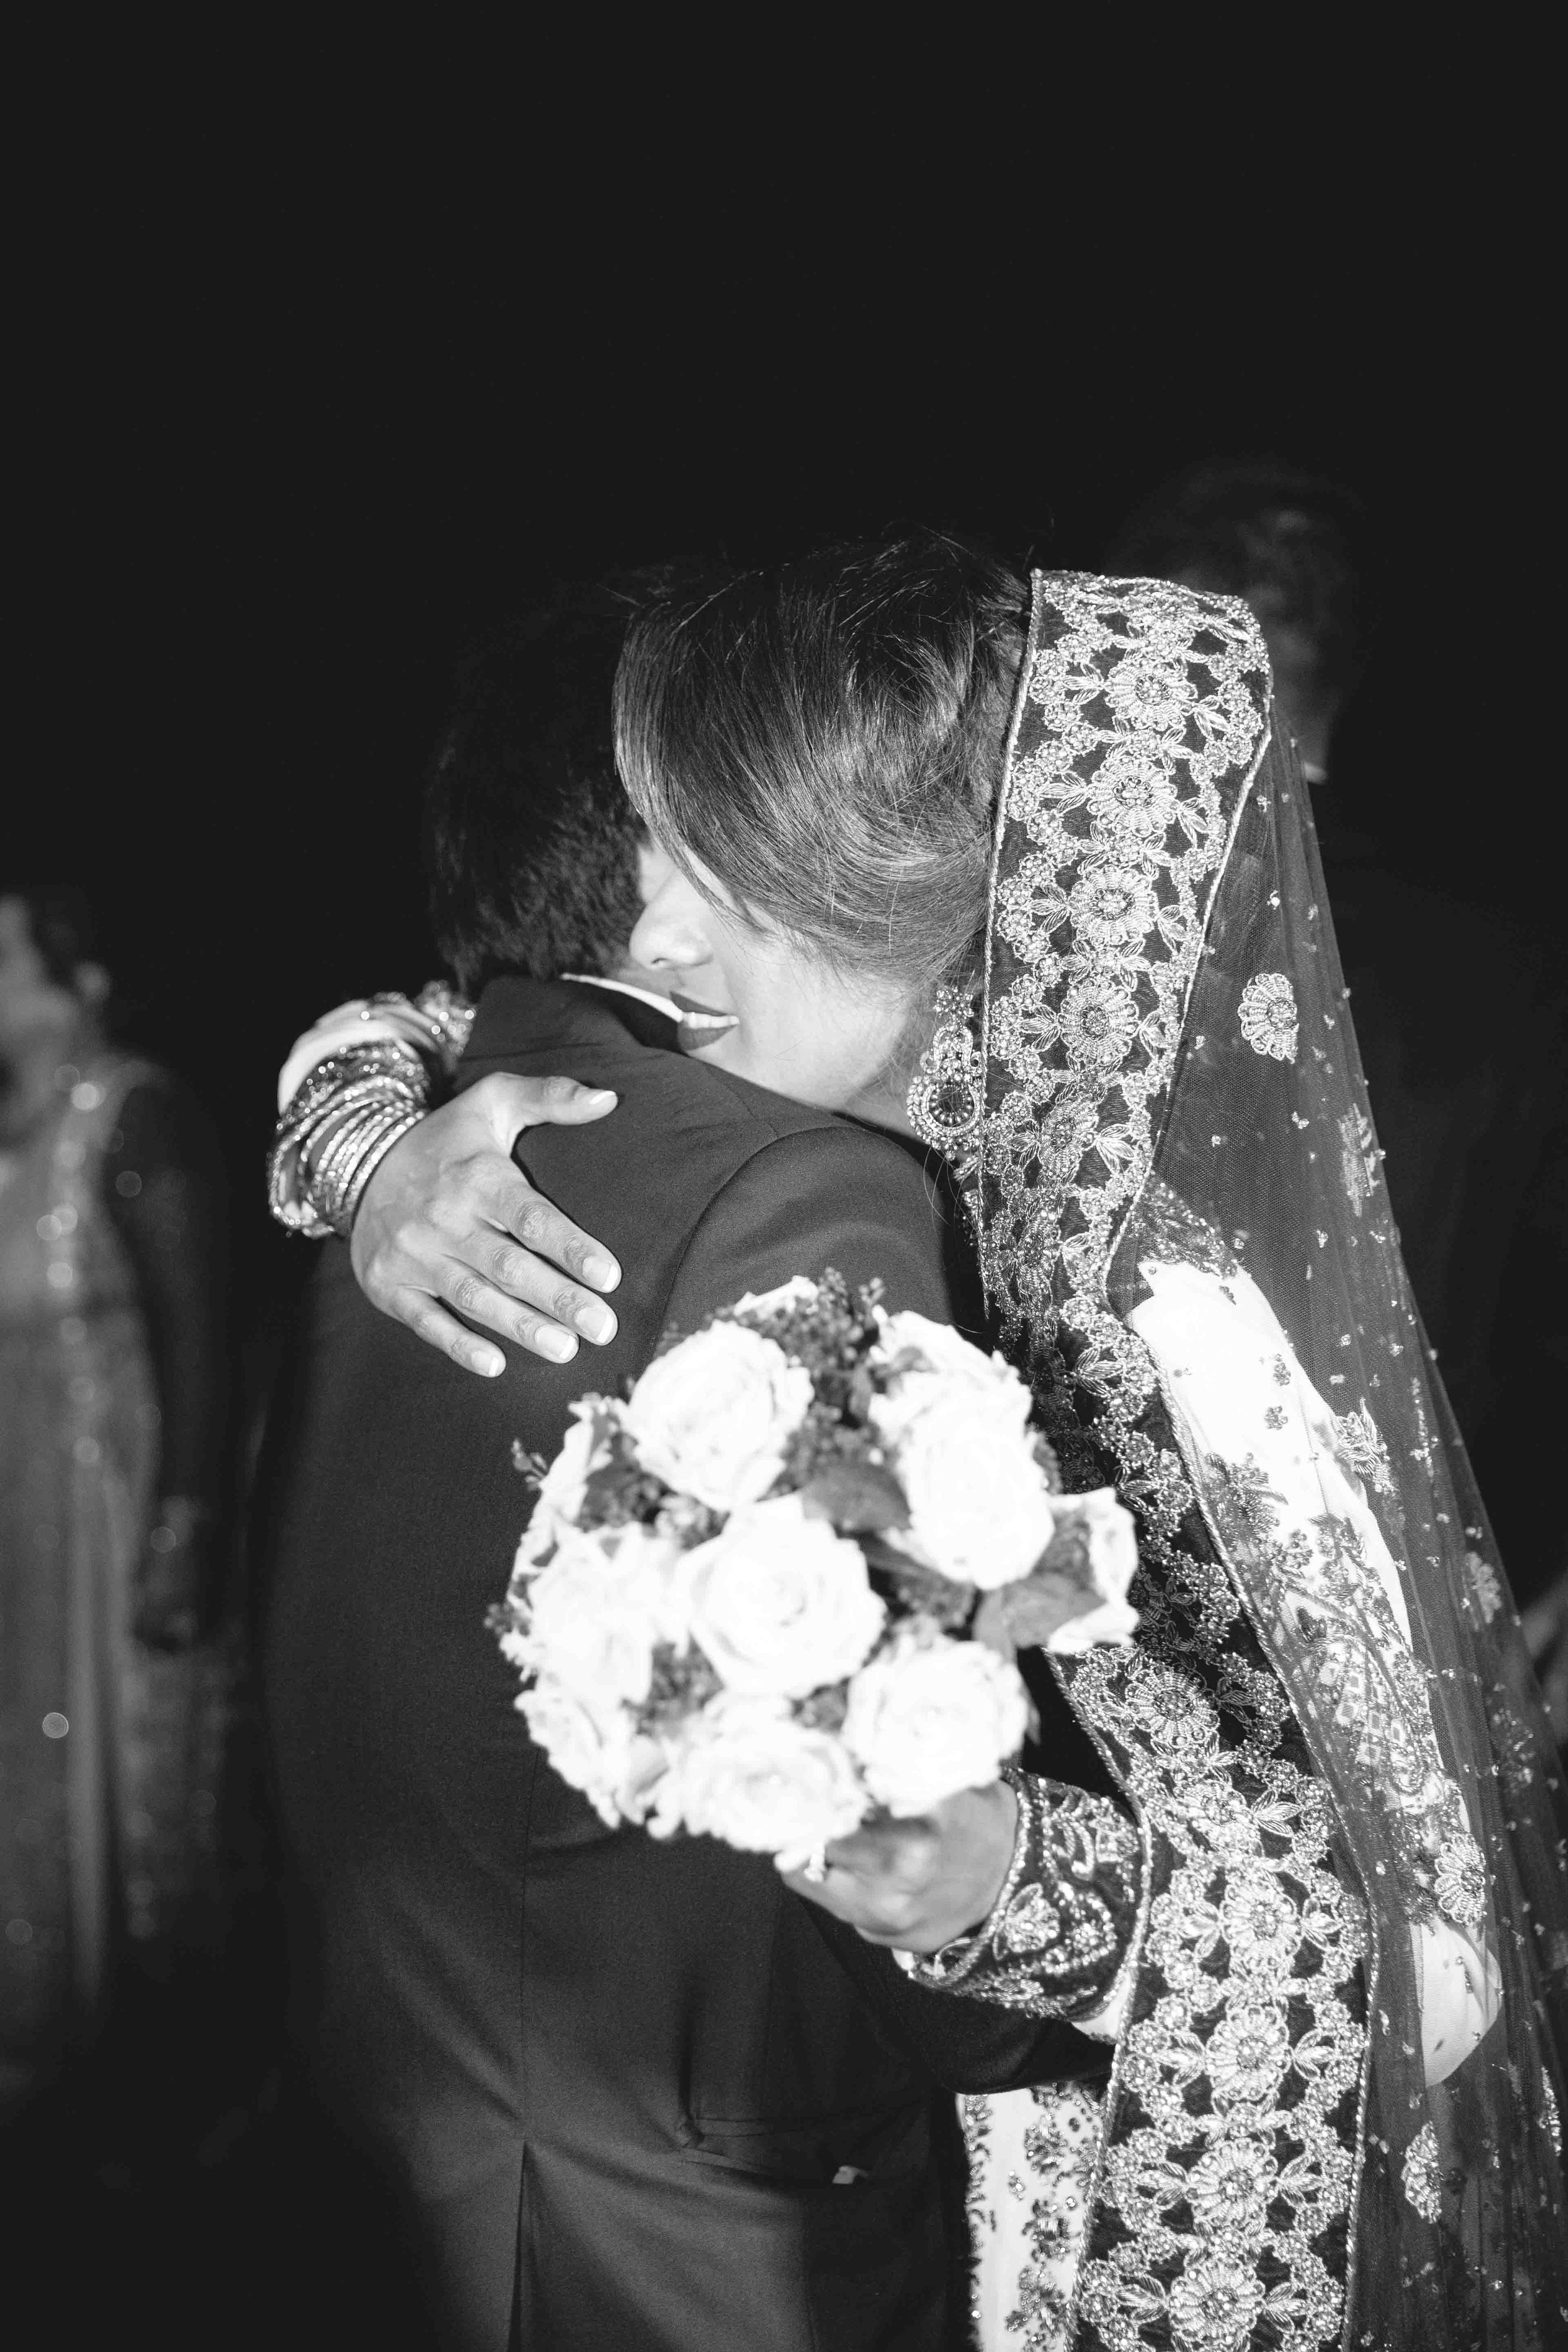 Asian Wedding Photographer Opu Sultan Photography Lyme Park Scotland Edinburgh Glasgow London Manchester Liverpool Birmingham Wedding Photos prewed shoot Azman & Saira Blog-167.jpg